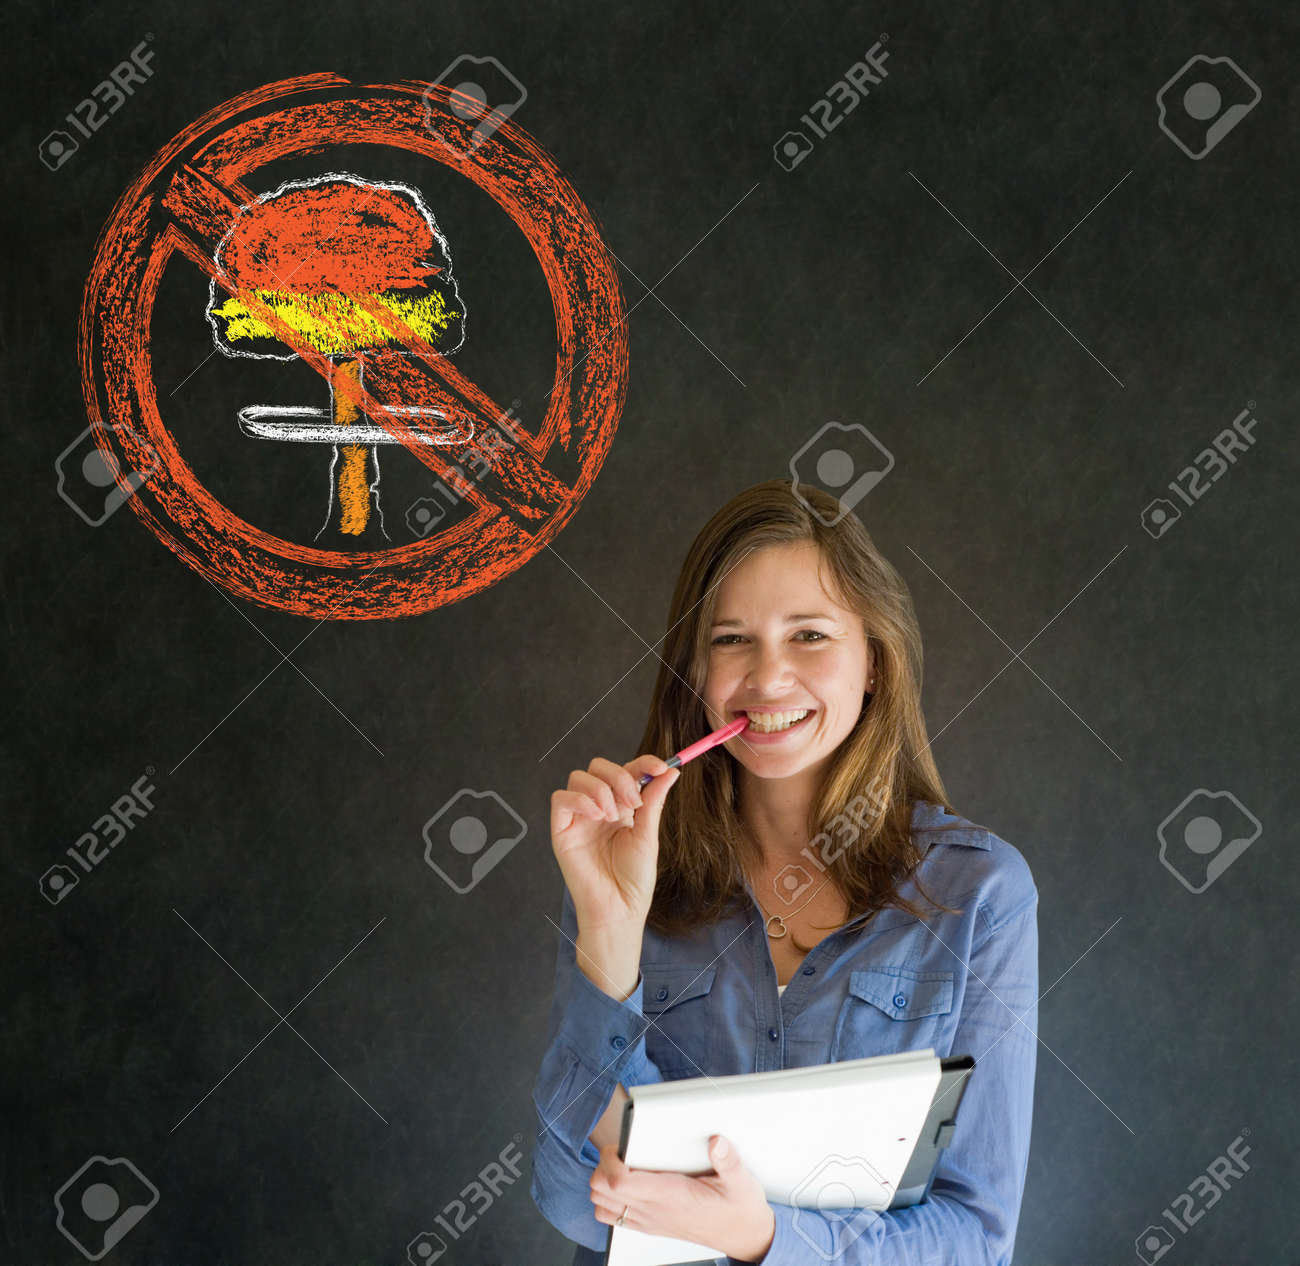 Business woman, student, teacher or politician no nuclear bombs war pacifist thought thinking chalk cloud on blackboard background Stock Photo - 19286646